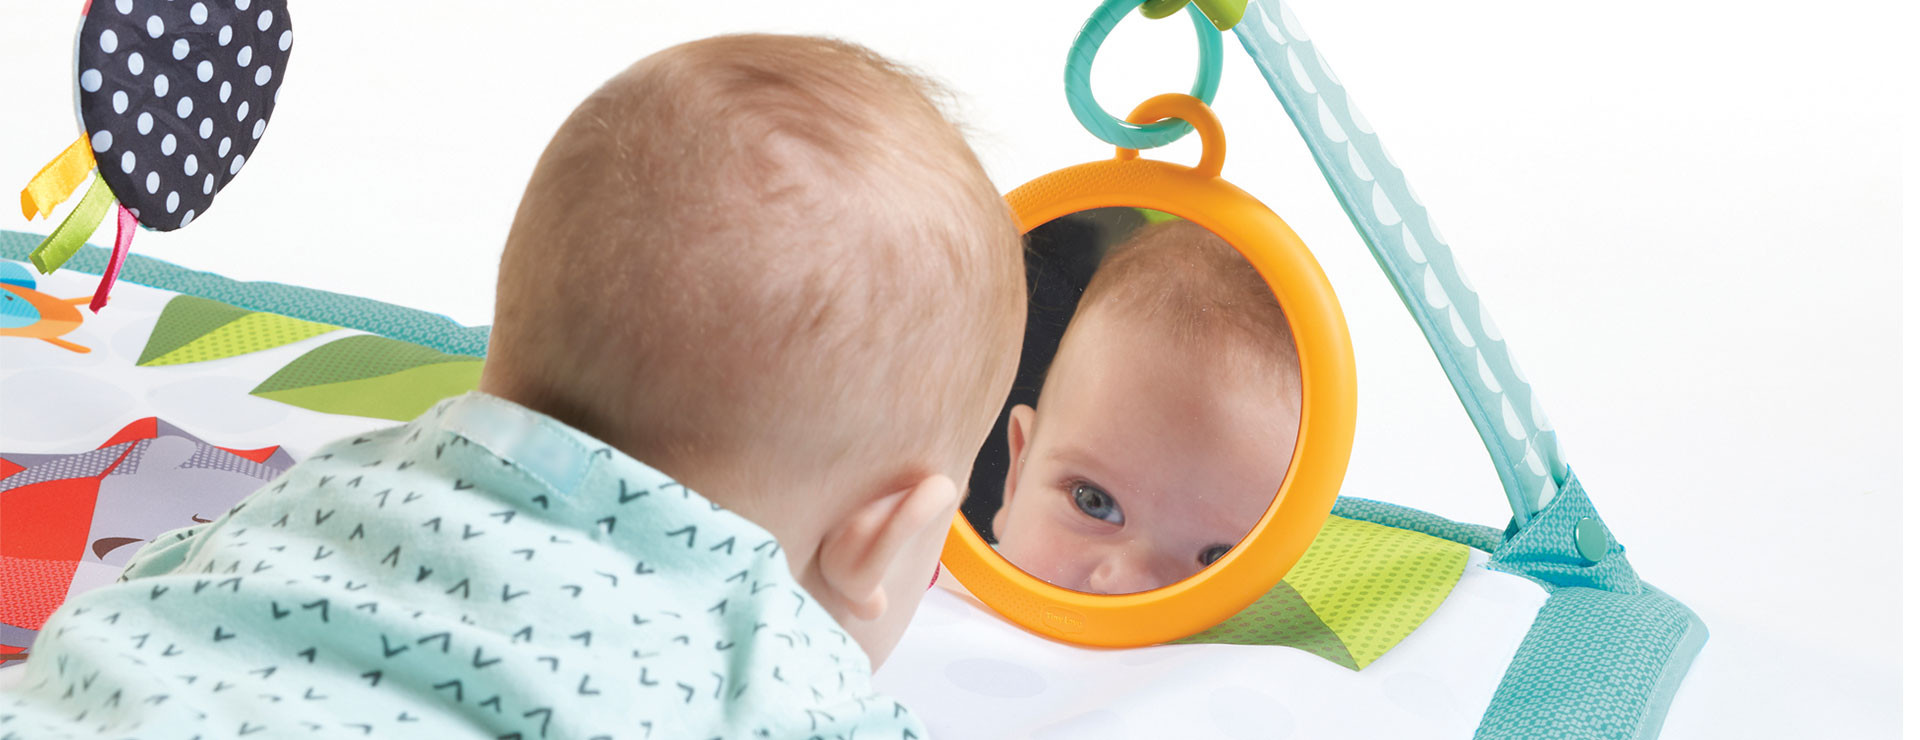 Comfortable mat and engaging mirror promote extended tummy time